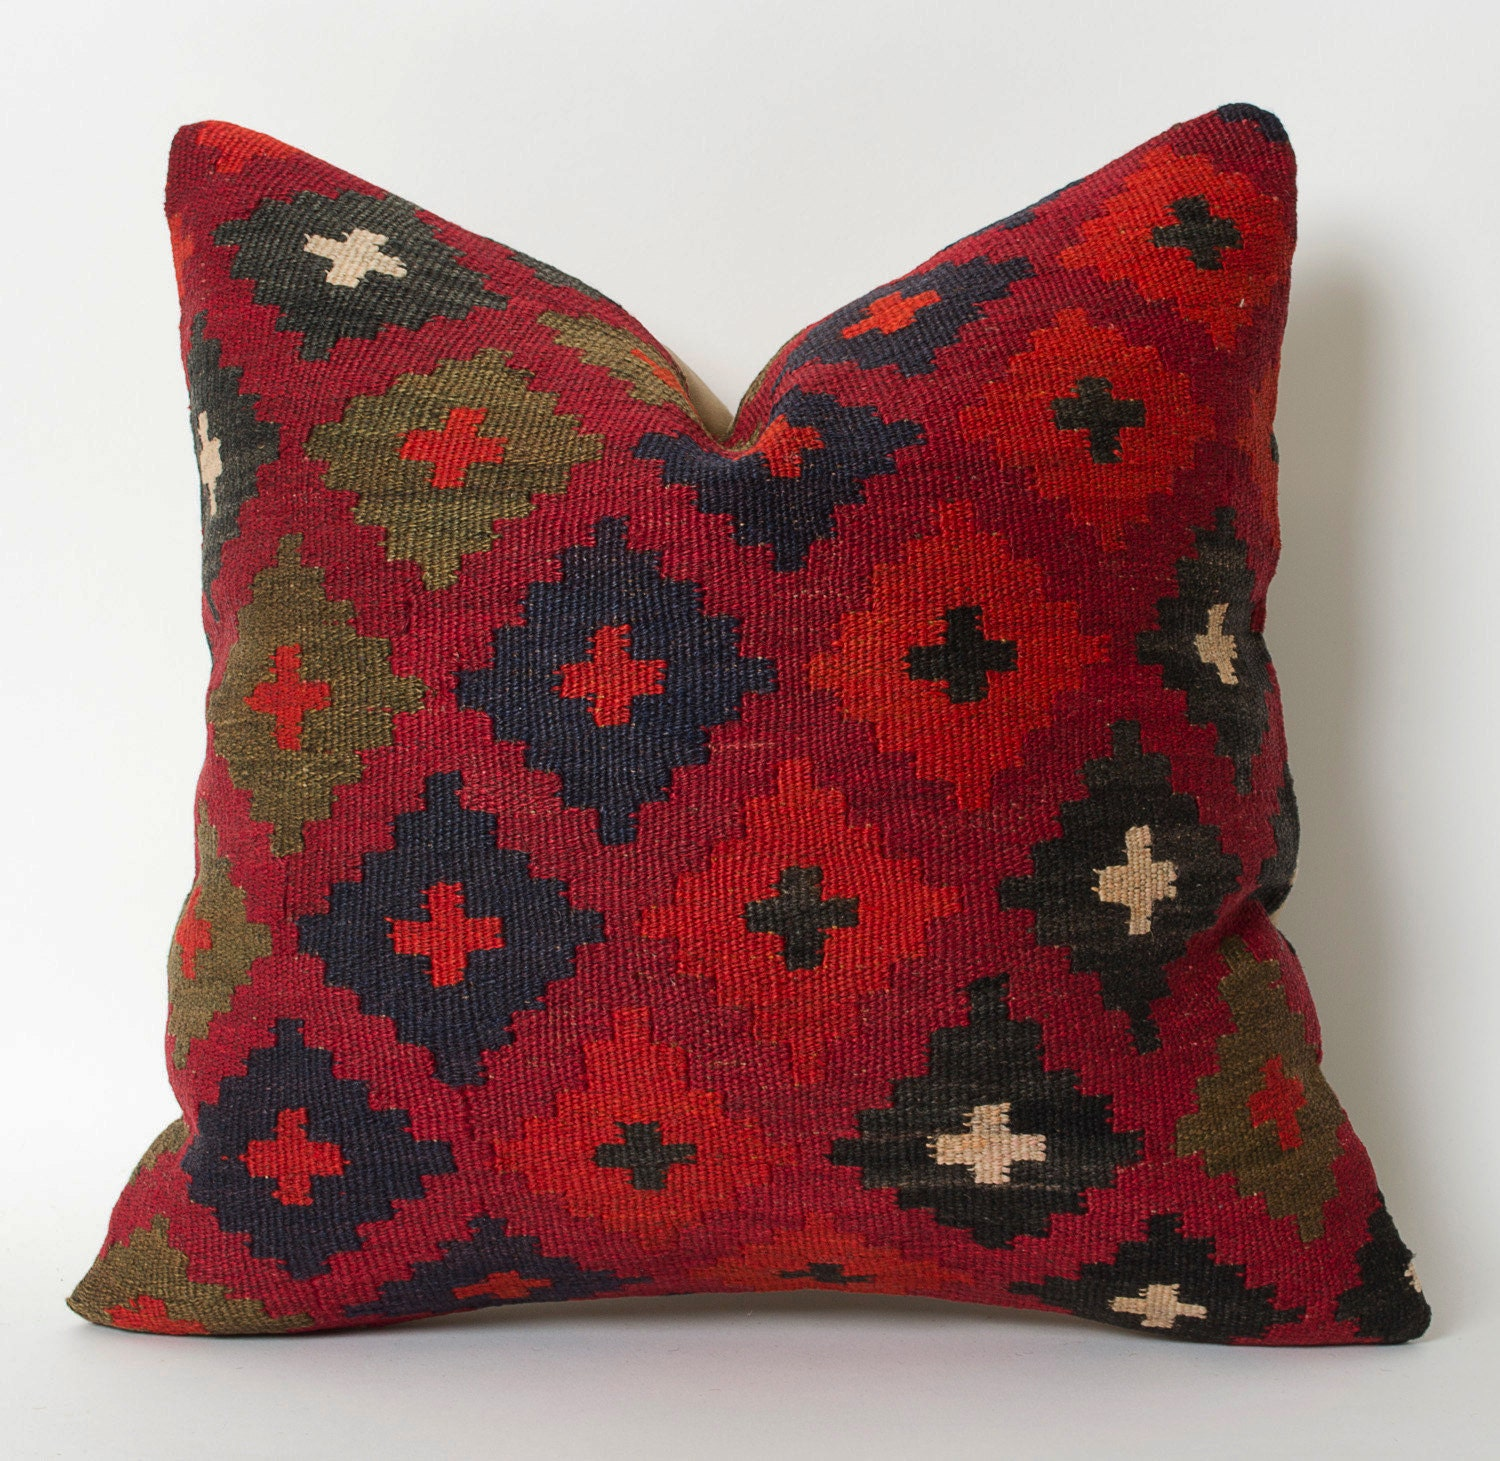 Decorative Pillows Kilim : kilim pillow decorative pillow kilim red home decor